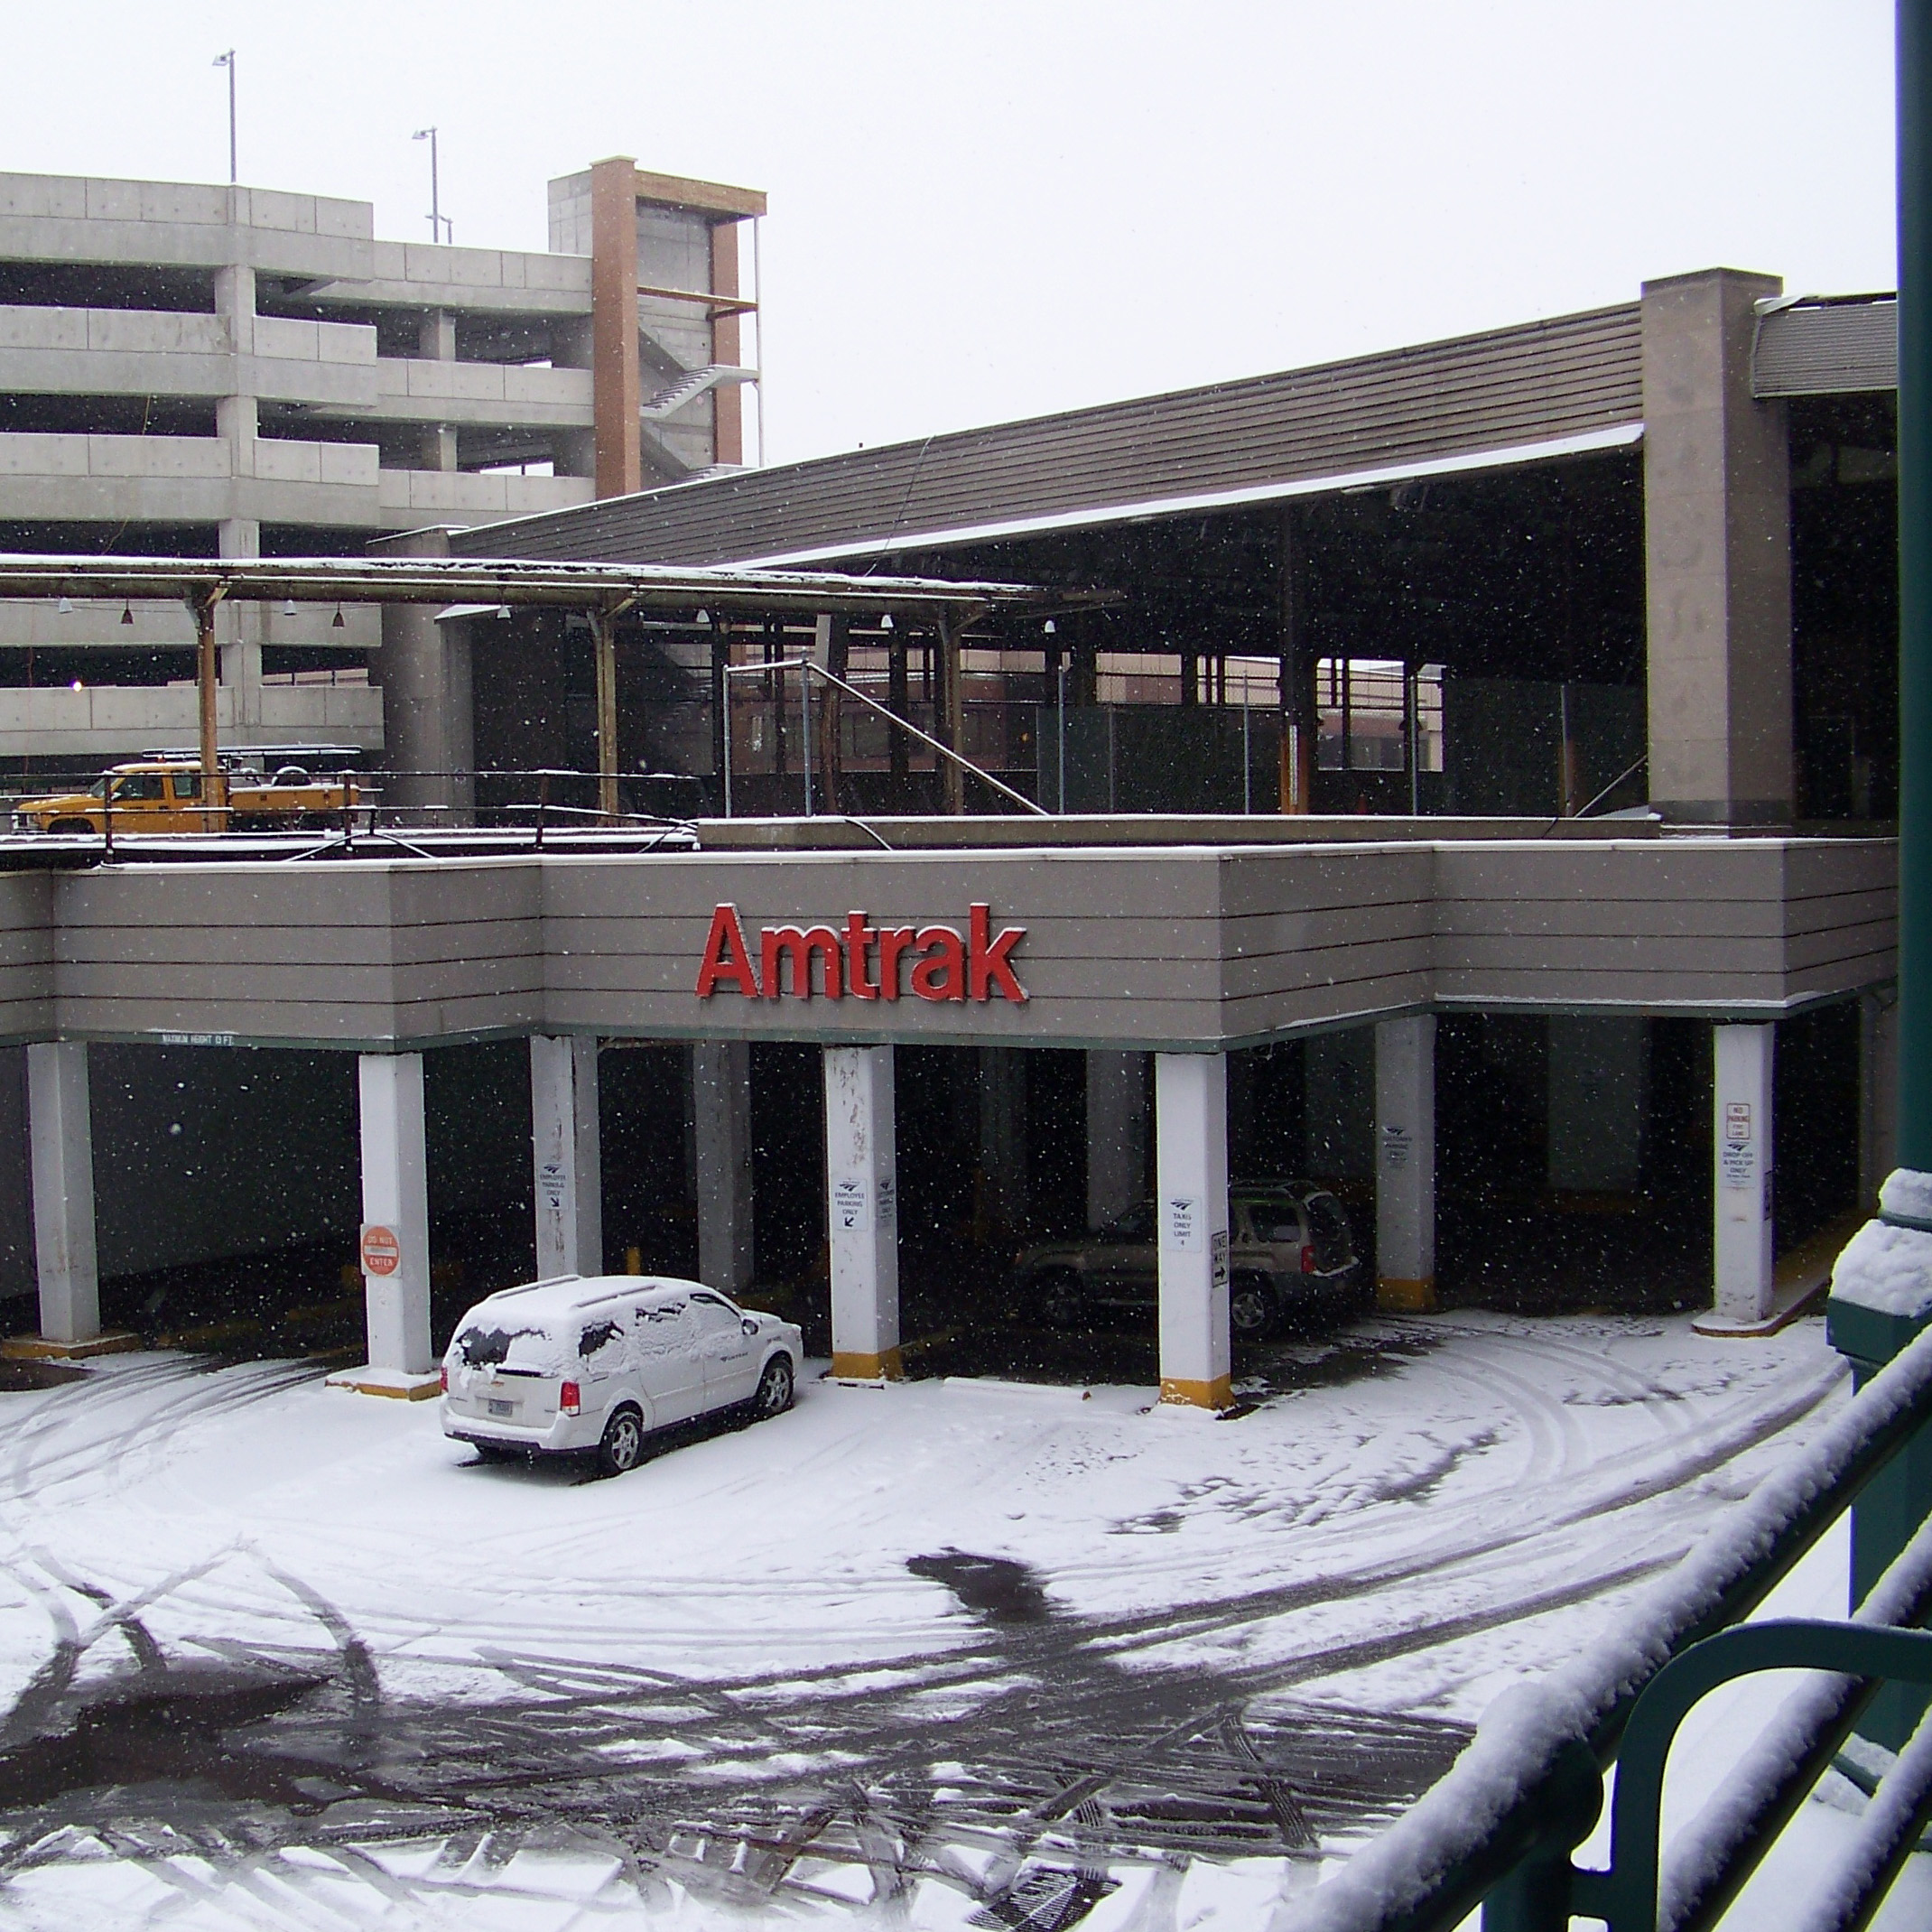 Pittsburgh station entrance